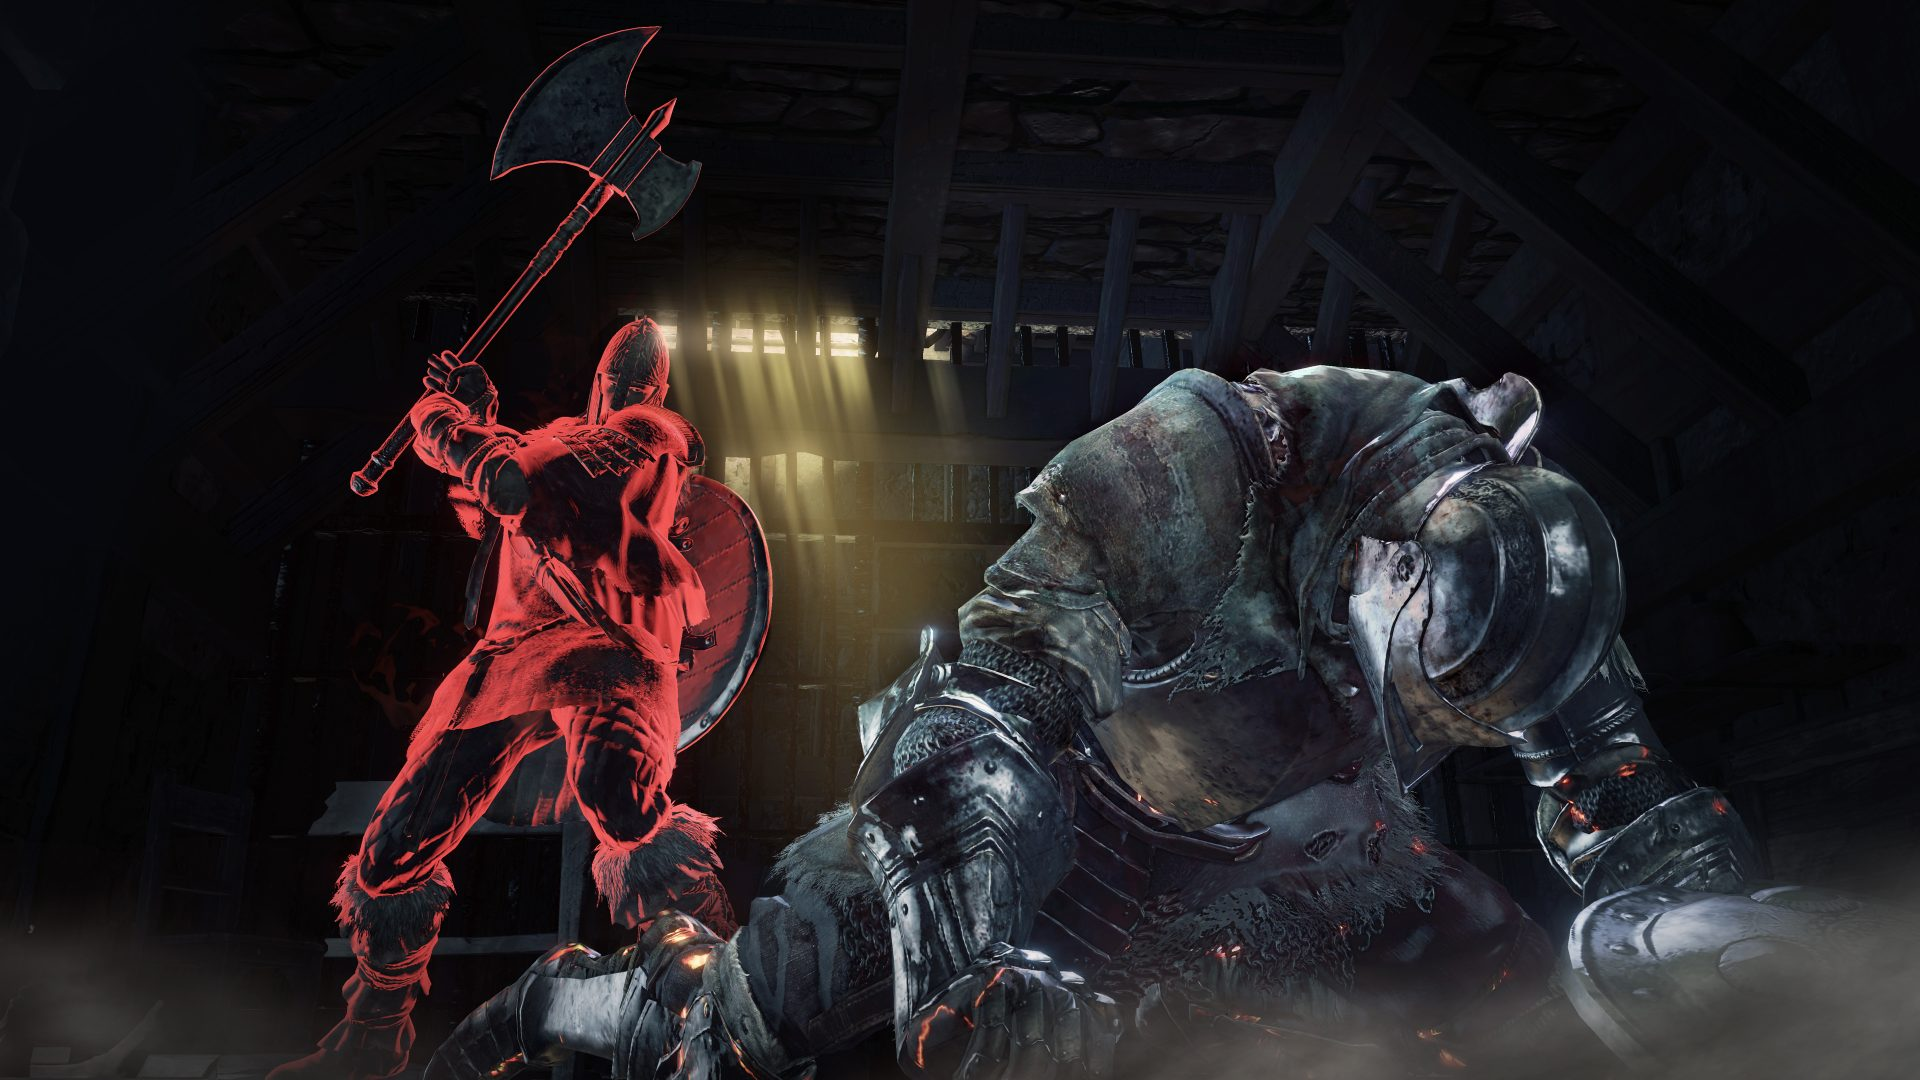 Here's what the Dark Souls 3 multiplayer is going to look like